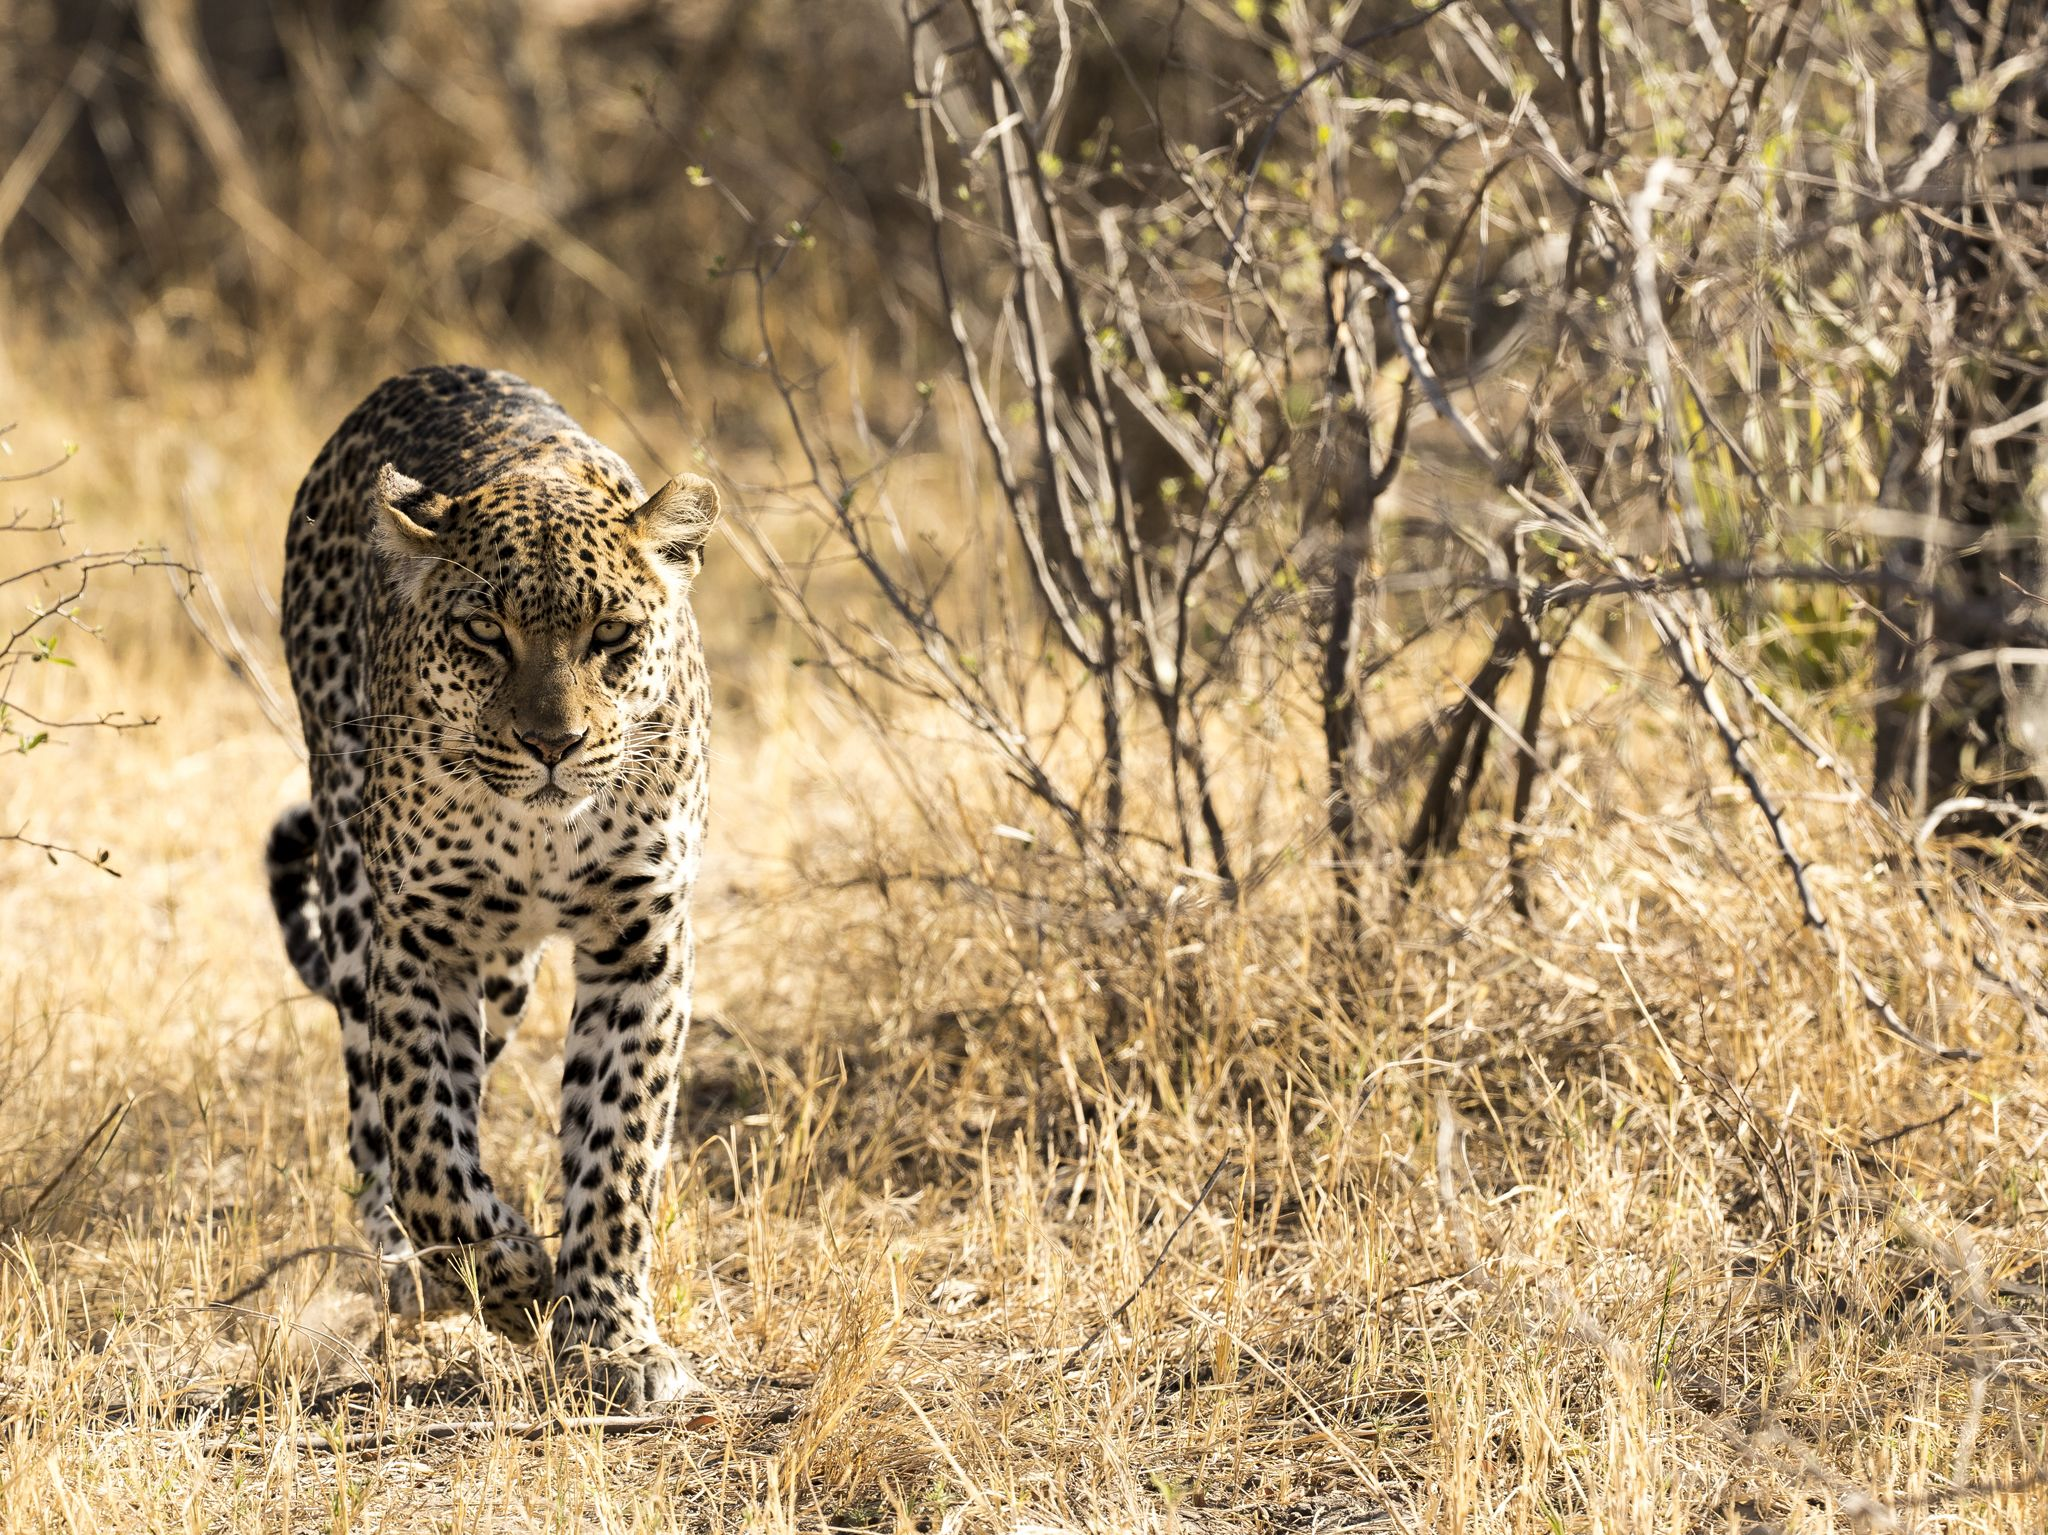 Phefo returning to her den. This image is from Savage Kingdom. [Photo of the day - January 2021]